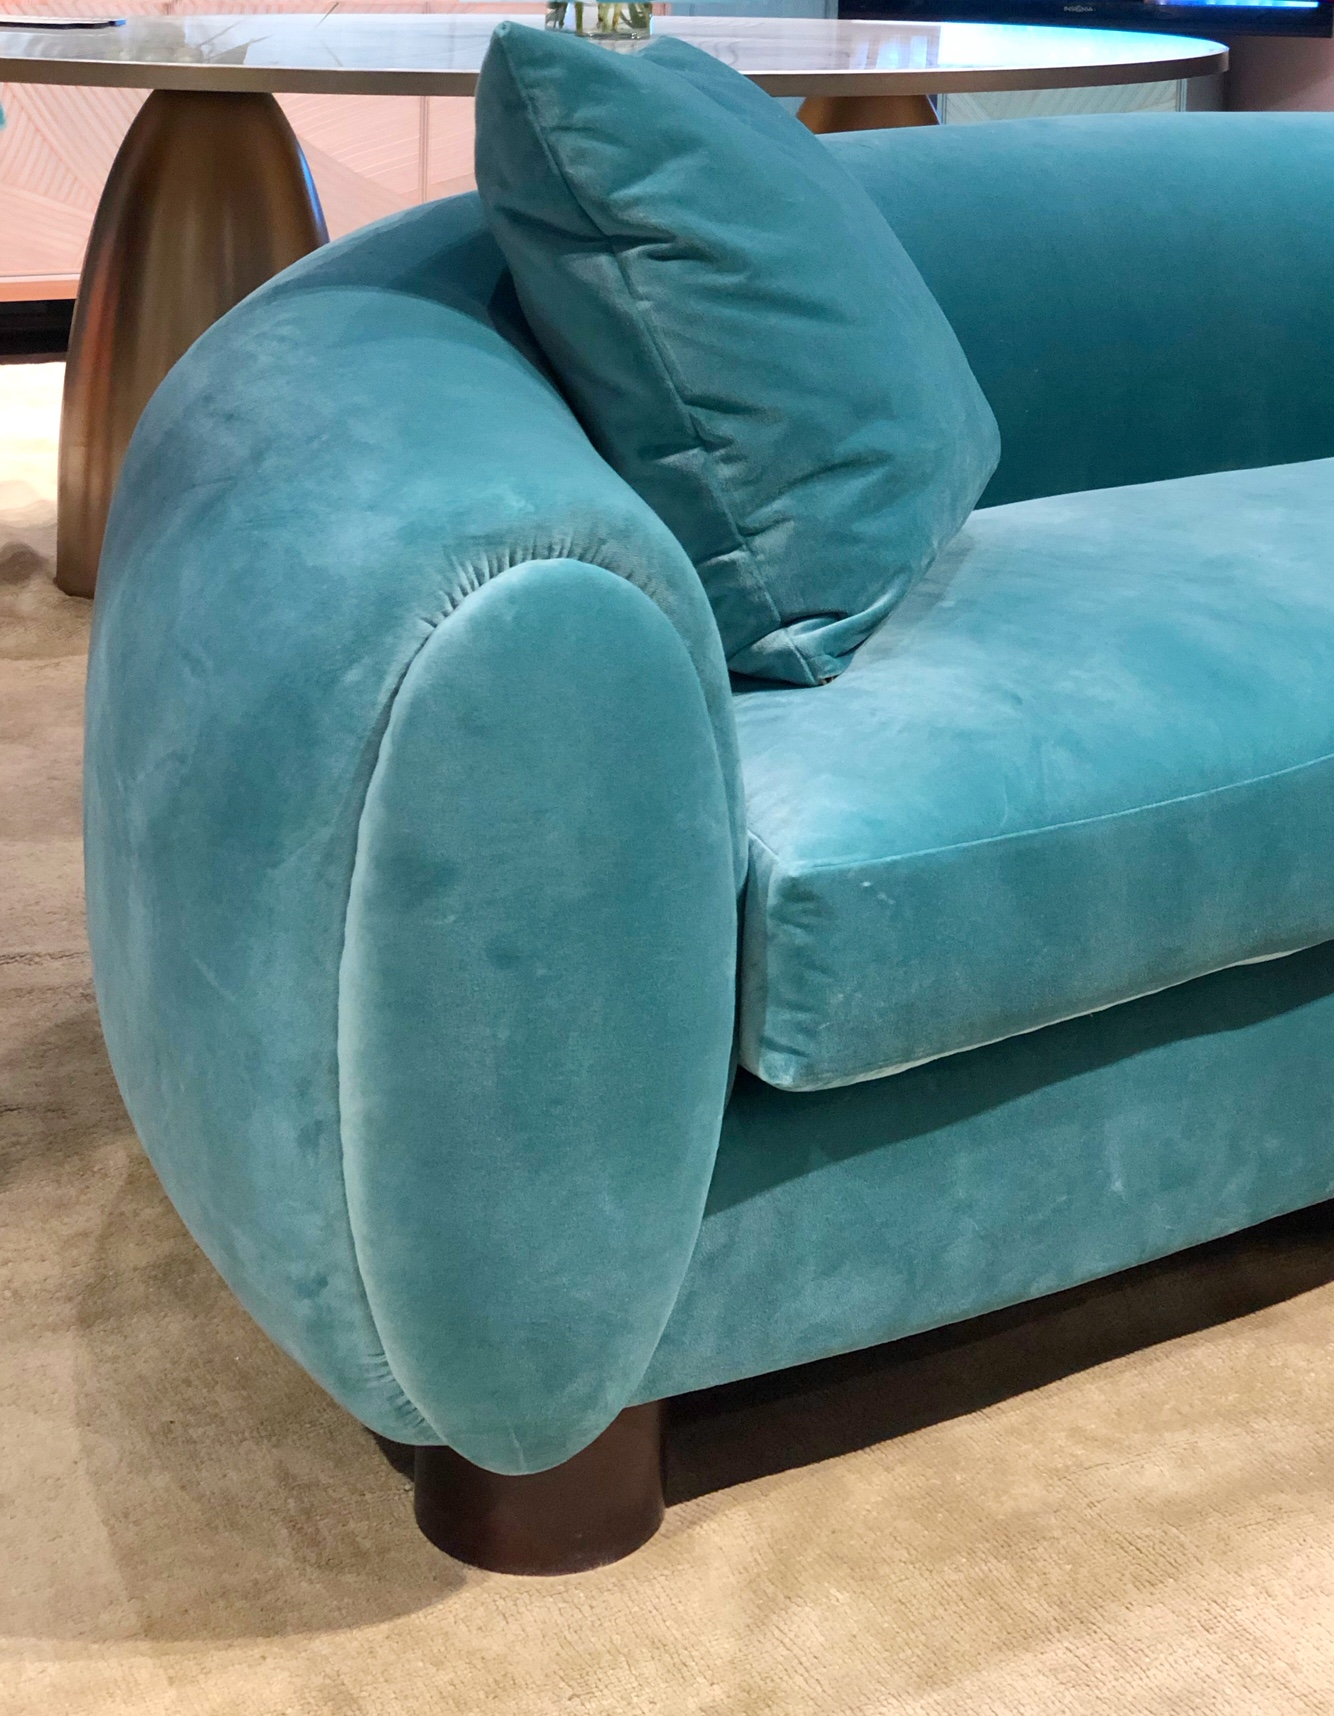 Superb Color And Design Trends From Spring 2019 High Point Market Caraccident5 Cool Chair Designs And Ideas Caraccident5Info